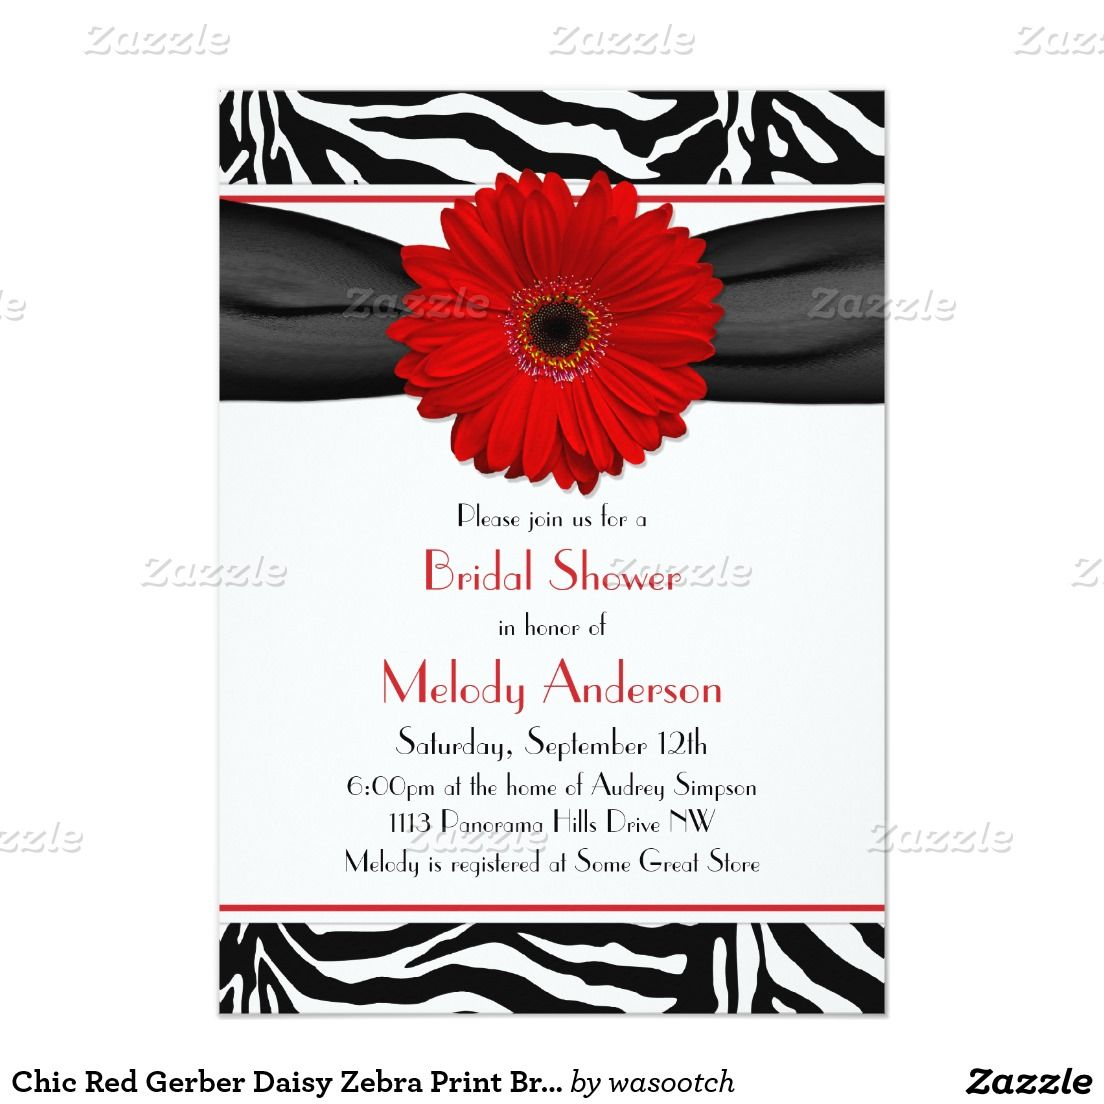 Chic Red Gerber Daisy Zebra Print Bridal Shower Invitation | wedding ...